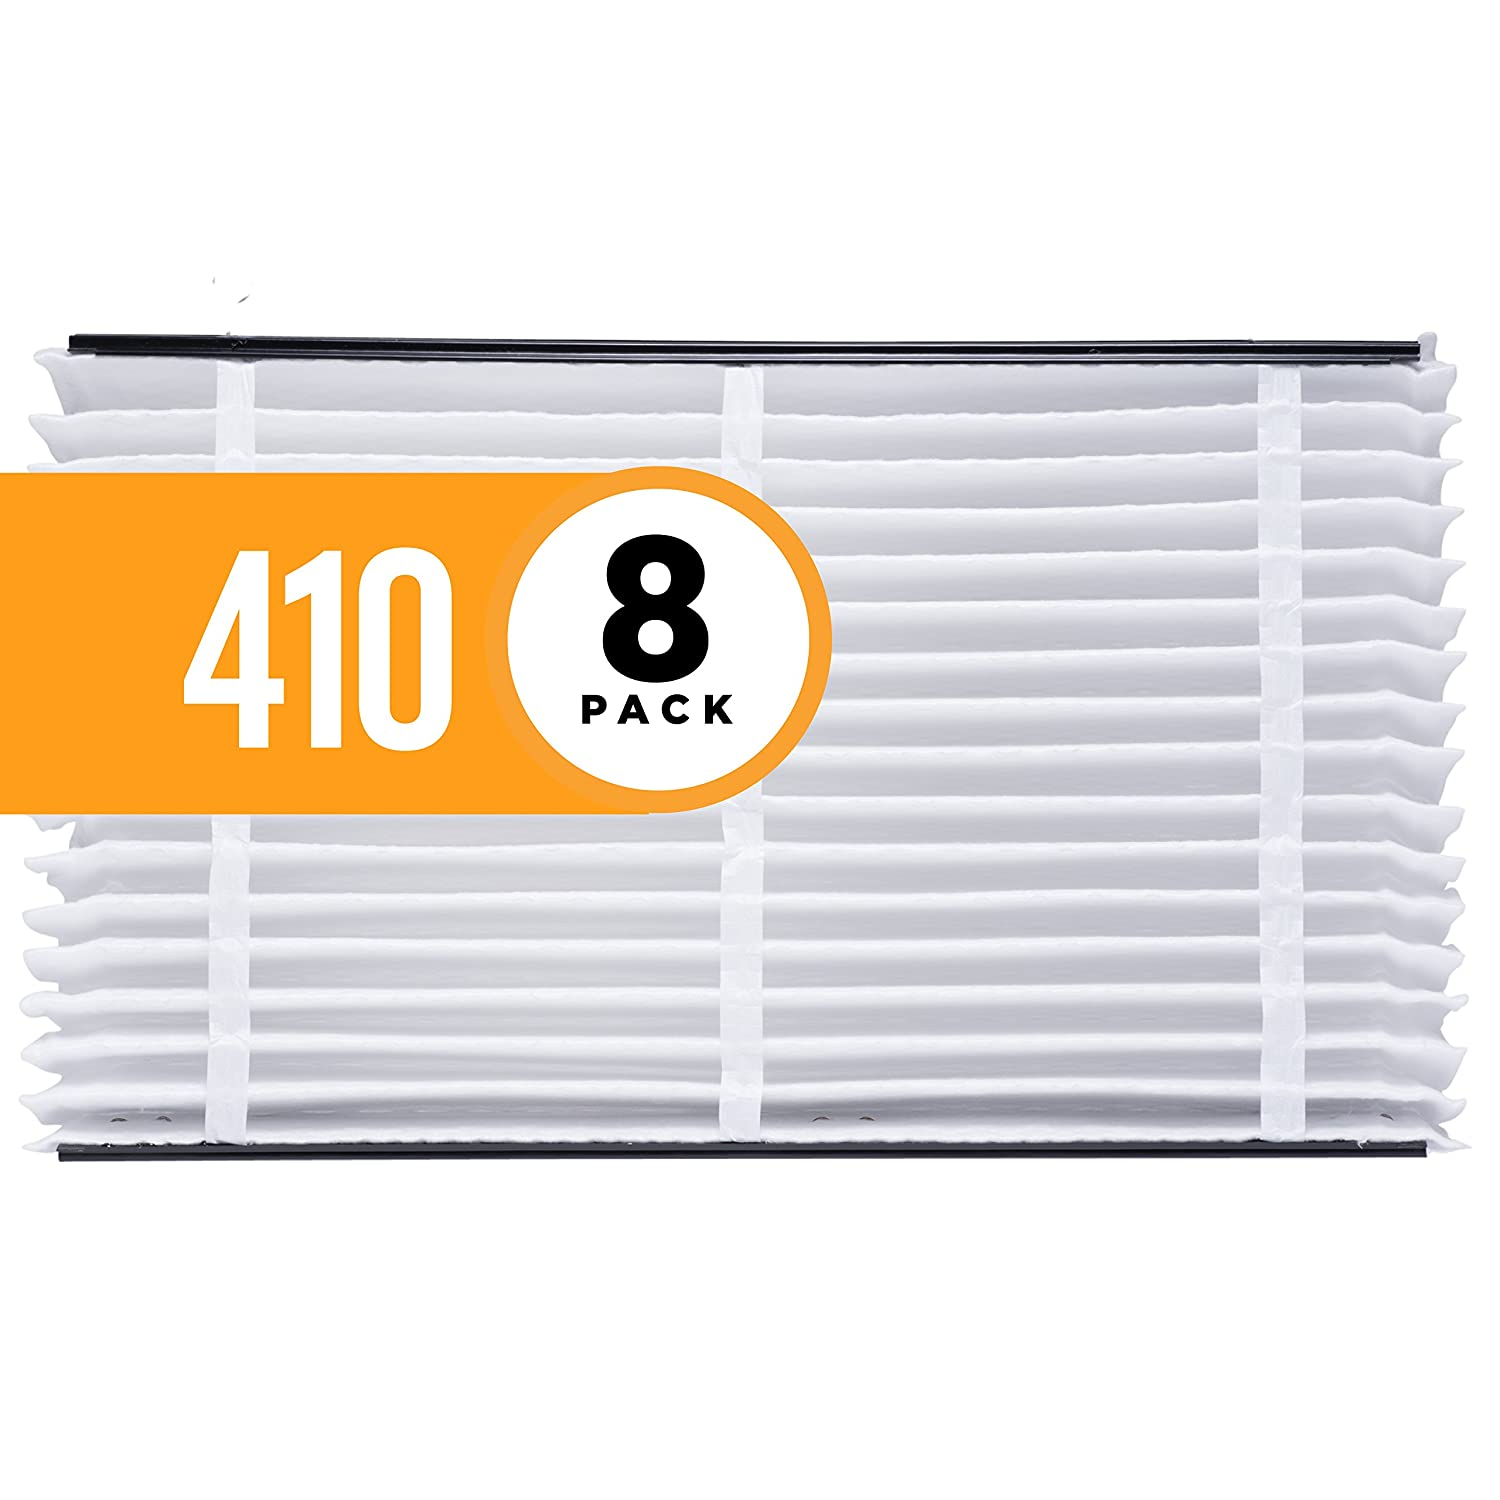 Aprilaire 410 Air Filter for Aprilaire Whole Home Air Purifiers, MERV 11 (Pack of 1) 410 A1